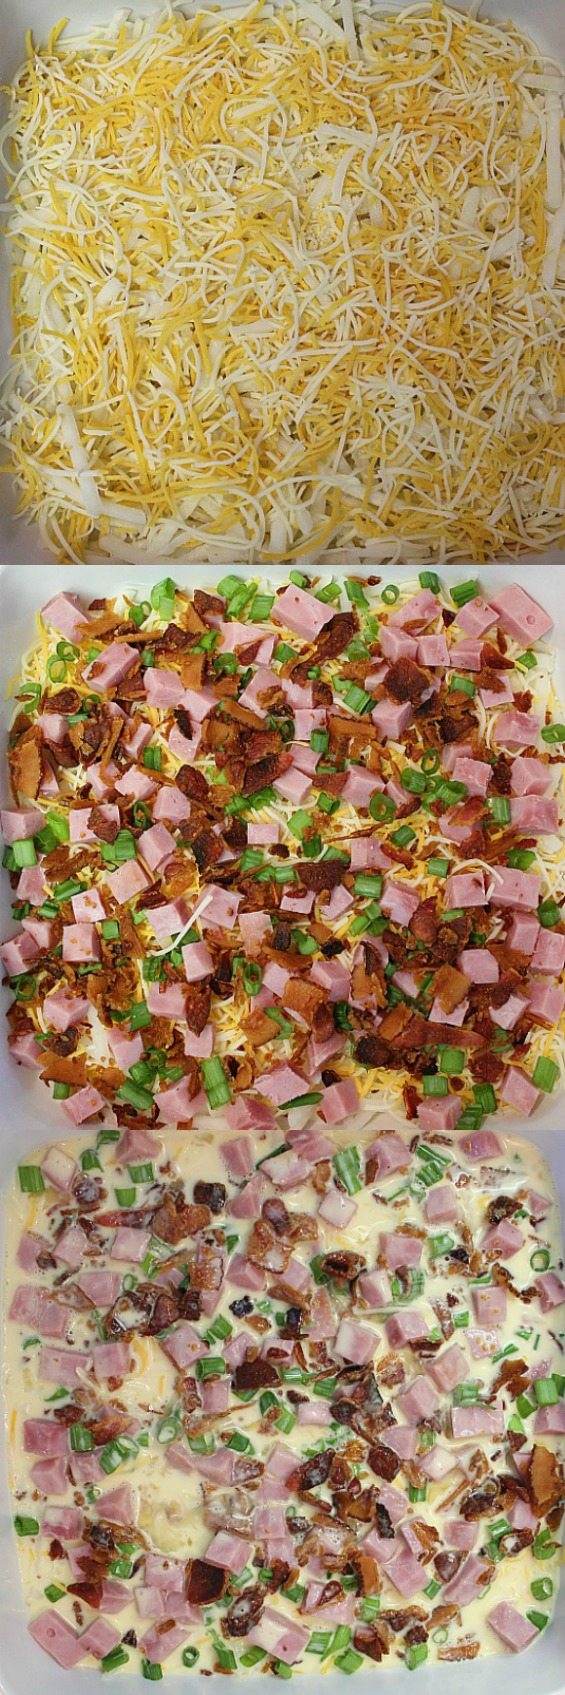 Different layers of Bacon Hash Brown Casserole.